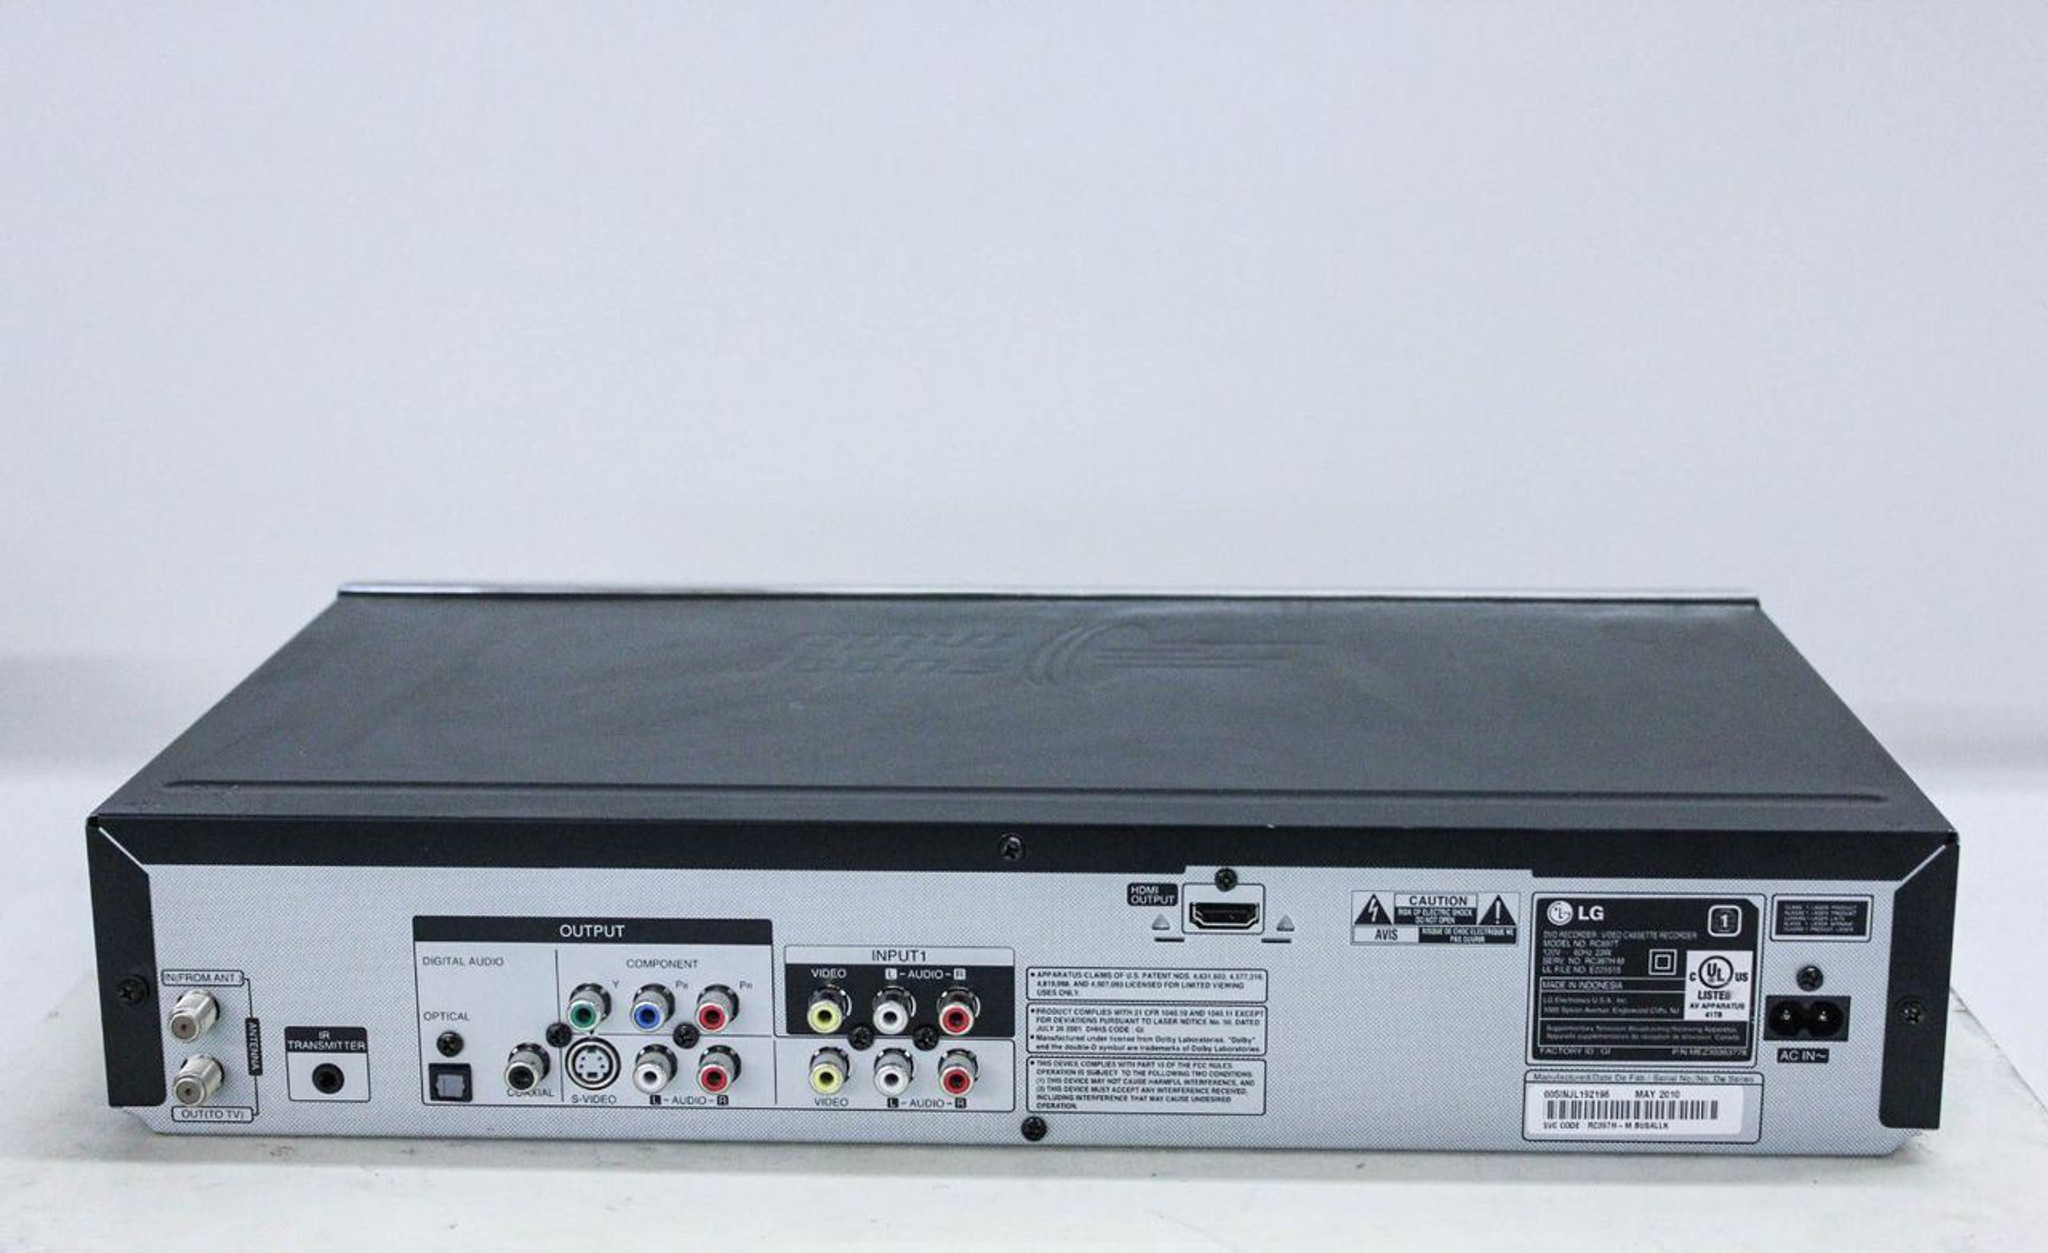 Lg combo dvd vcr manual - Geometric series converges